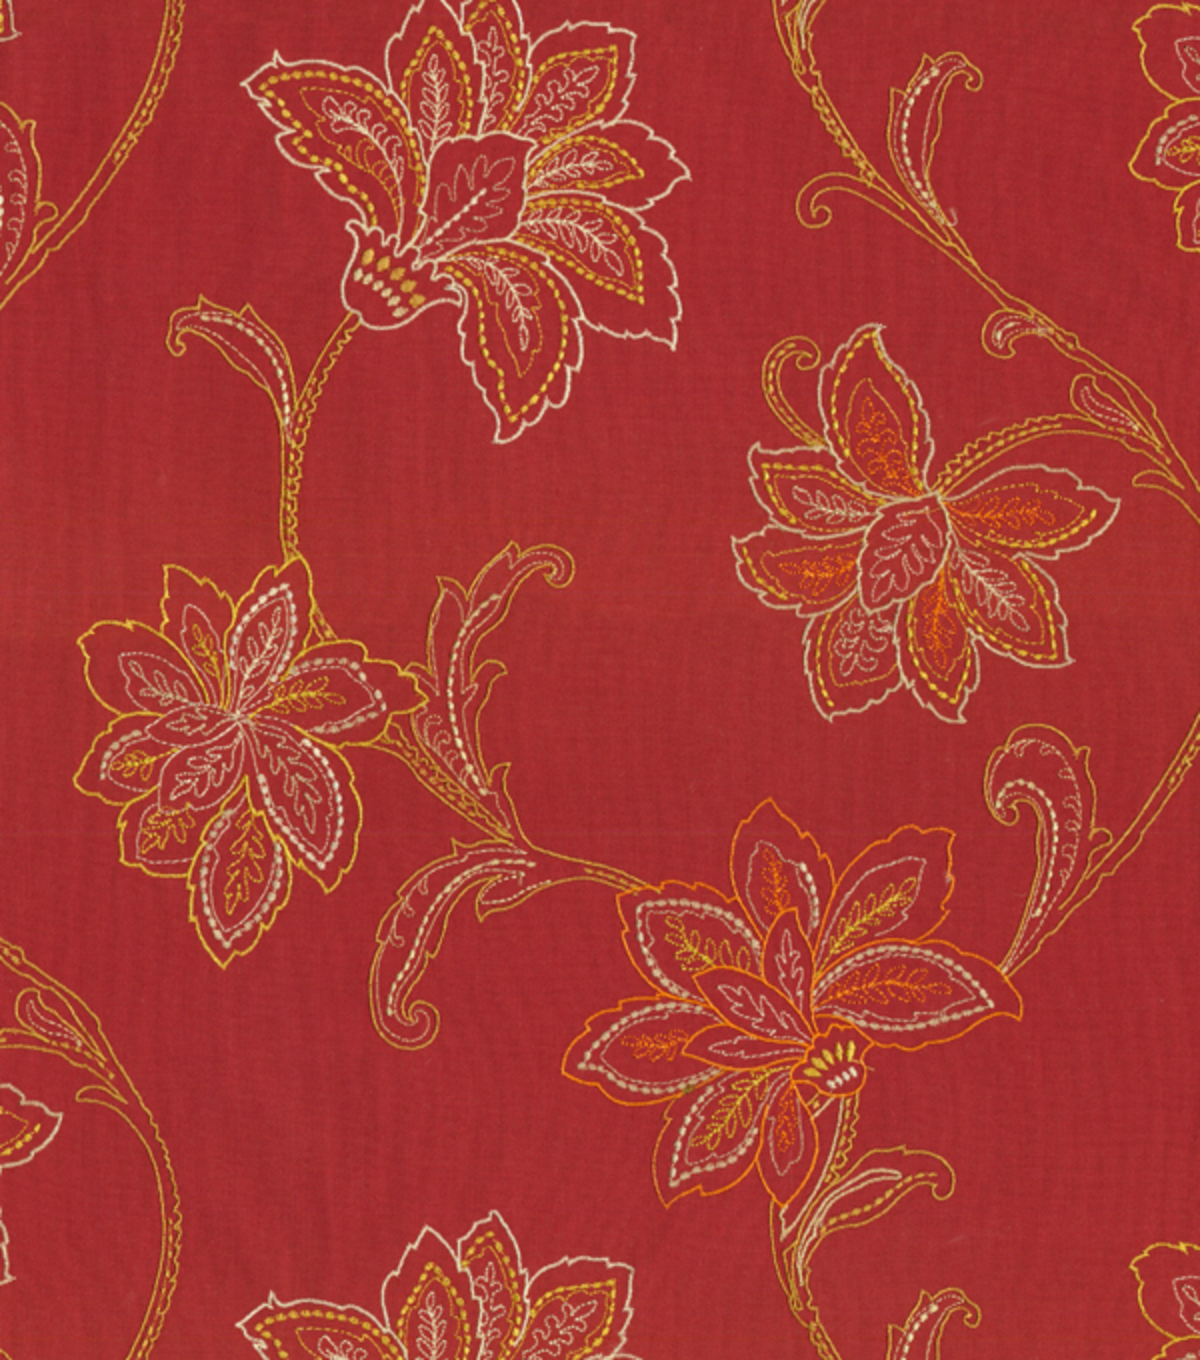 Waverly Upholstery Fabric-Mystical Embroidery/Fiesta